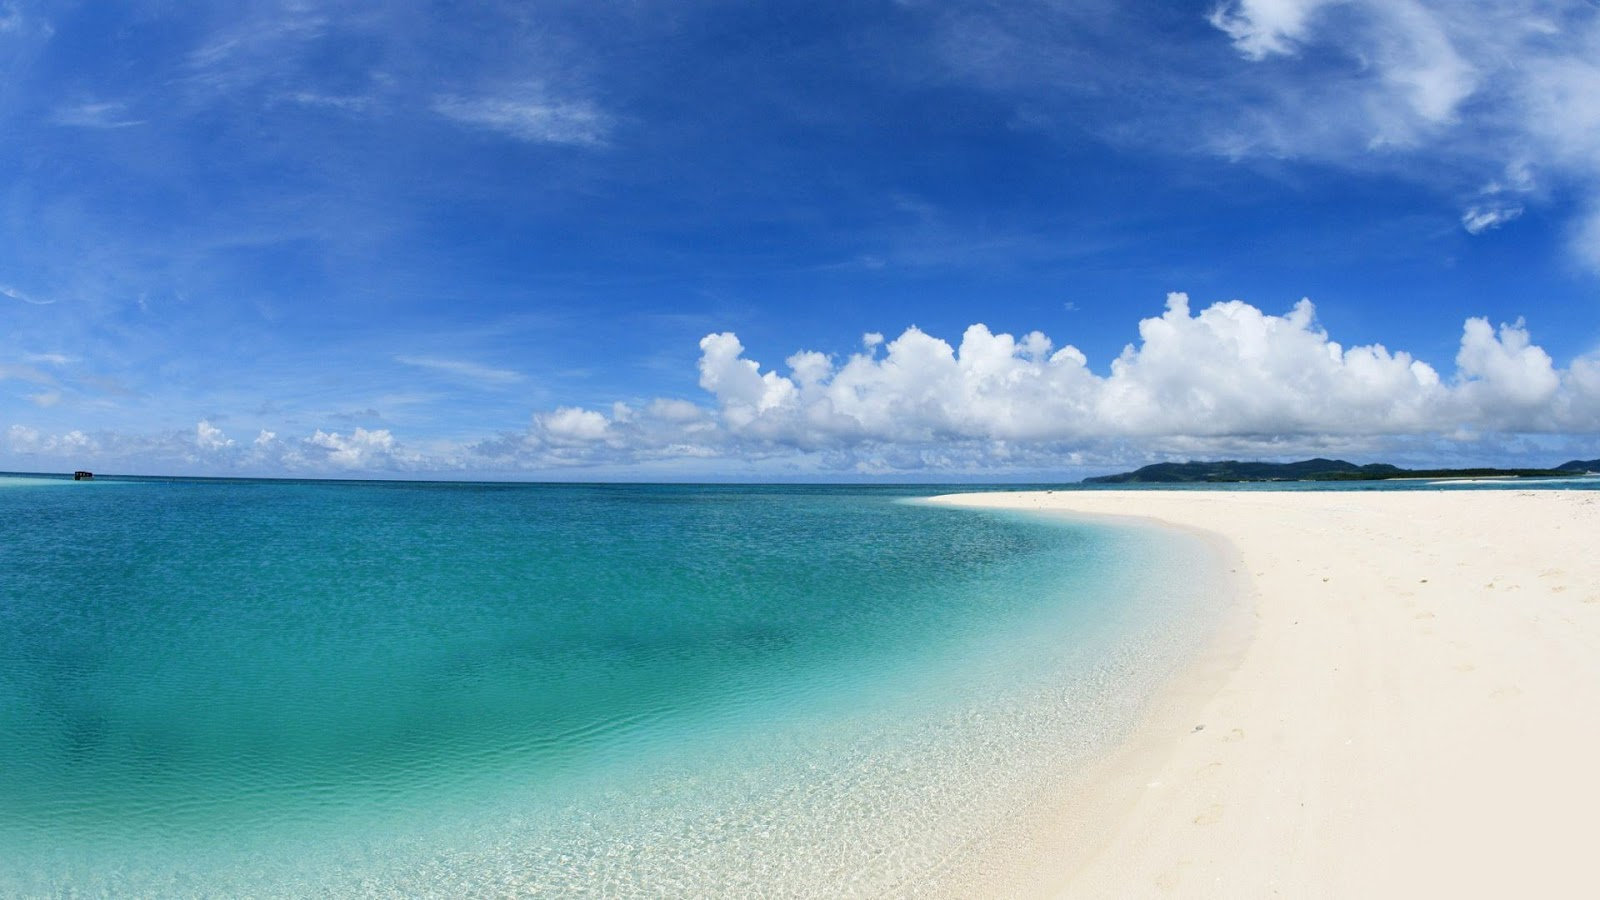 Blue water white sand beach hd wallpapers 1080p ultra hd - Beach hd wallpapers 1080p ...